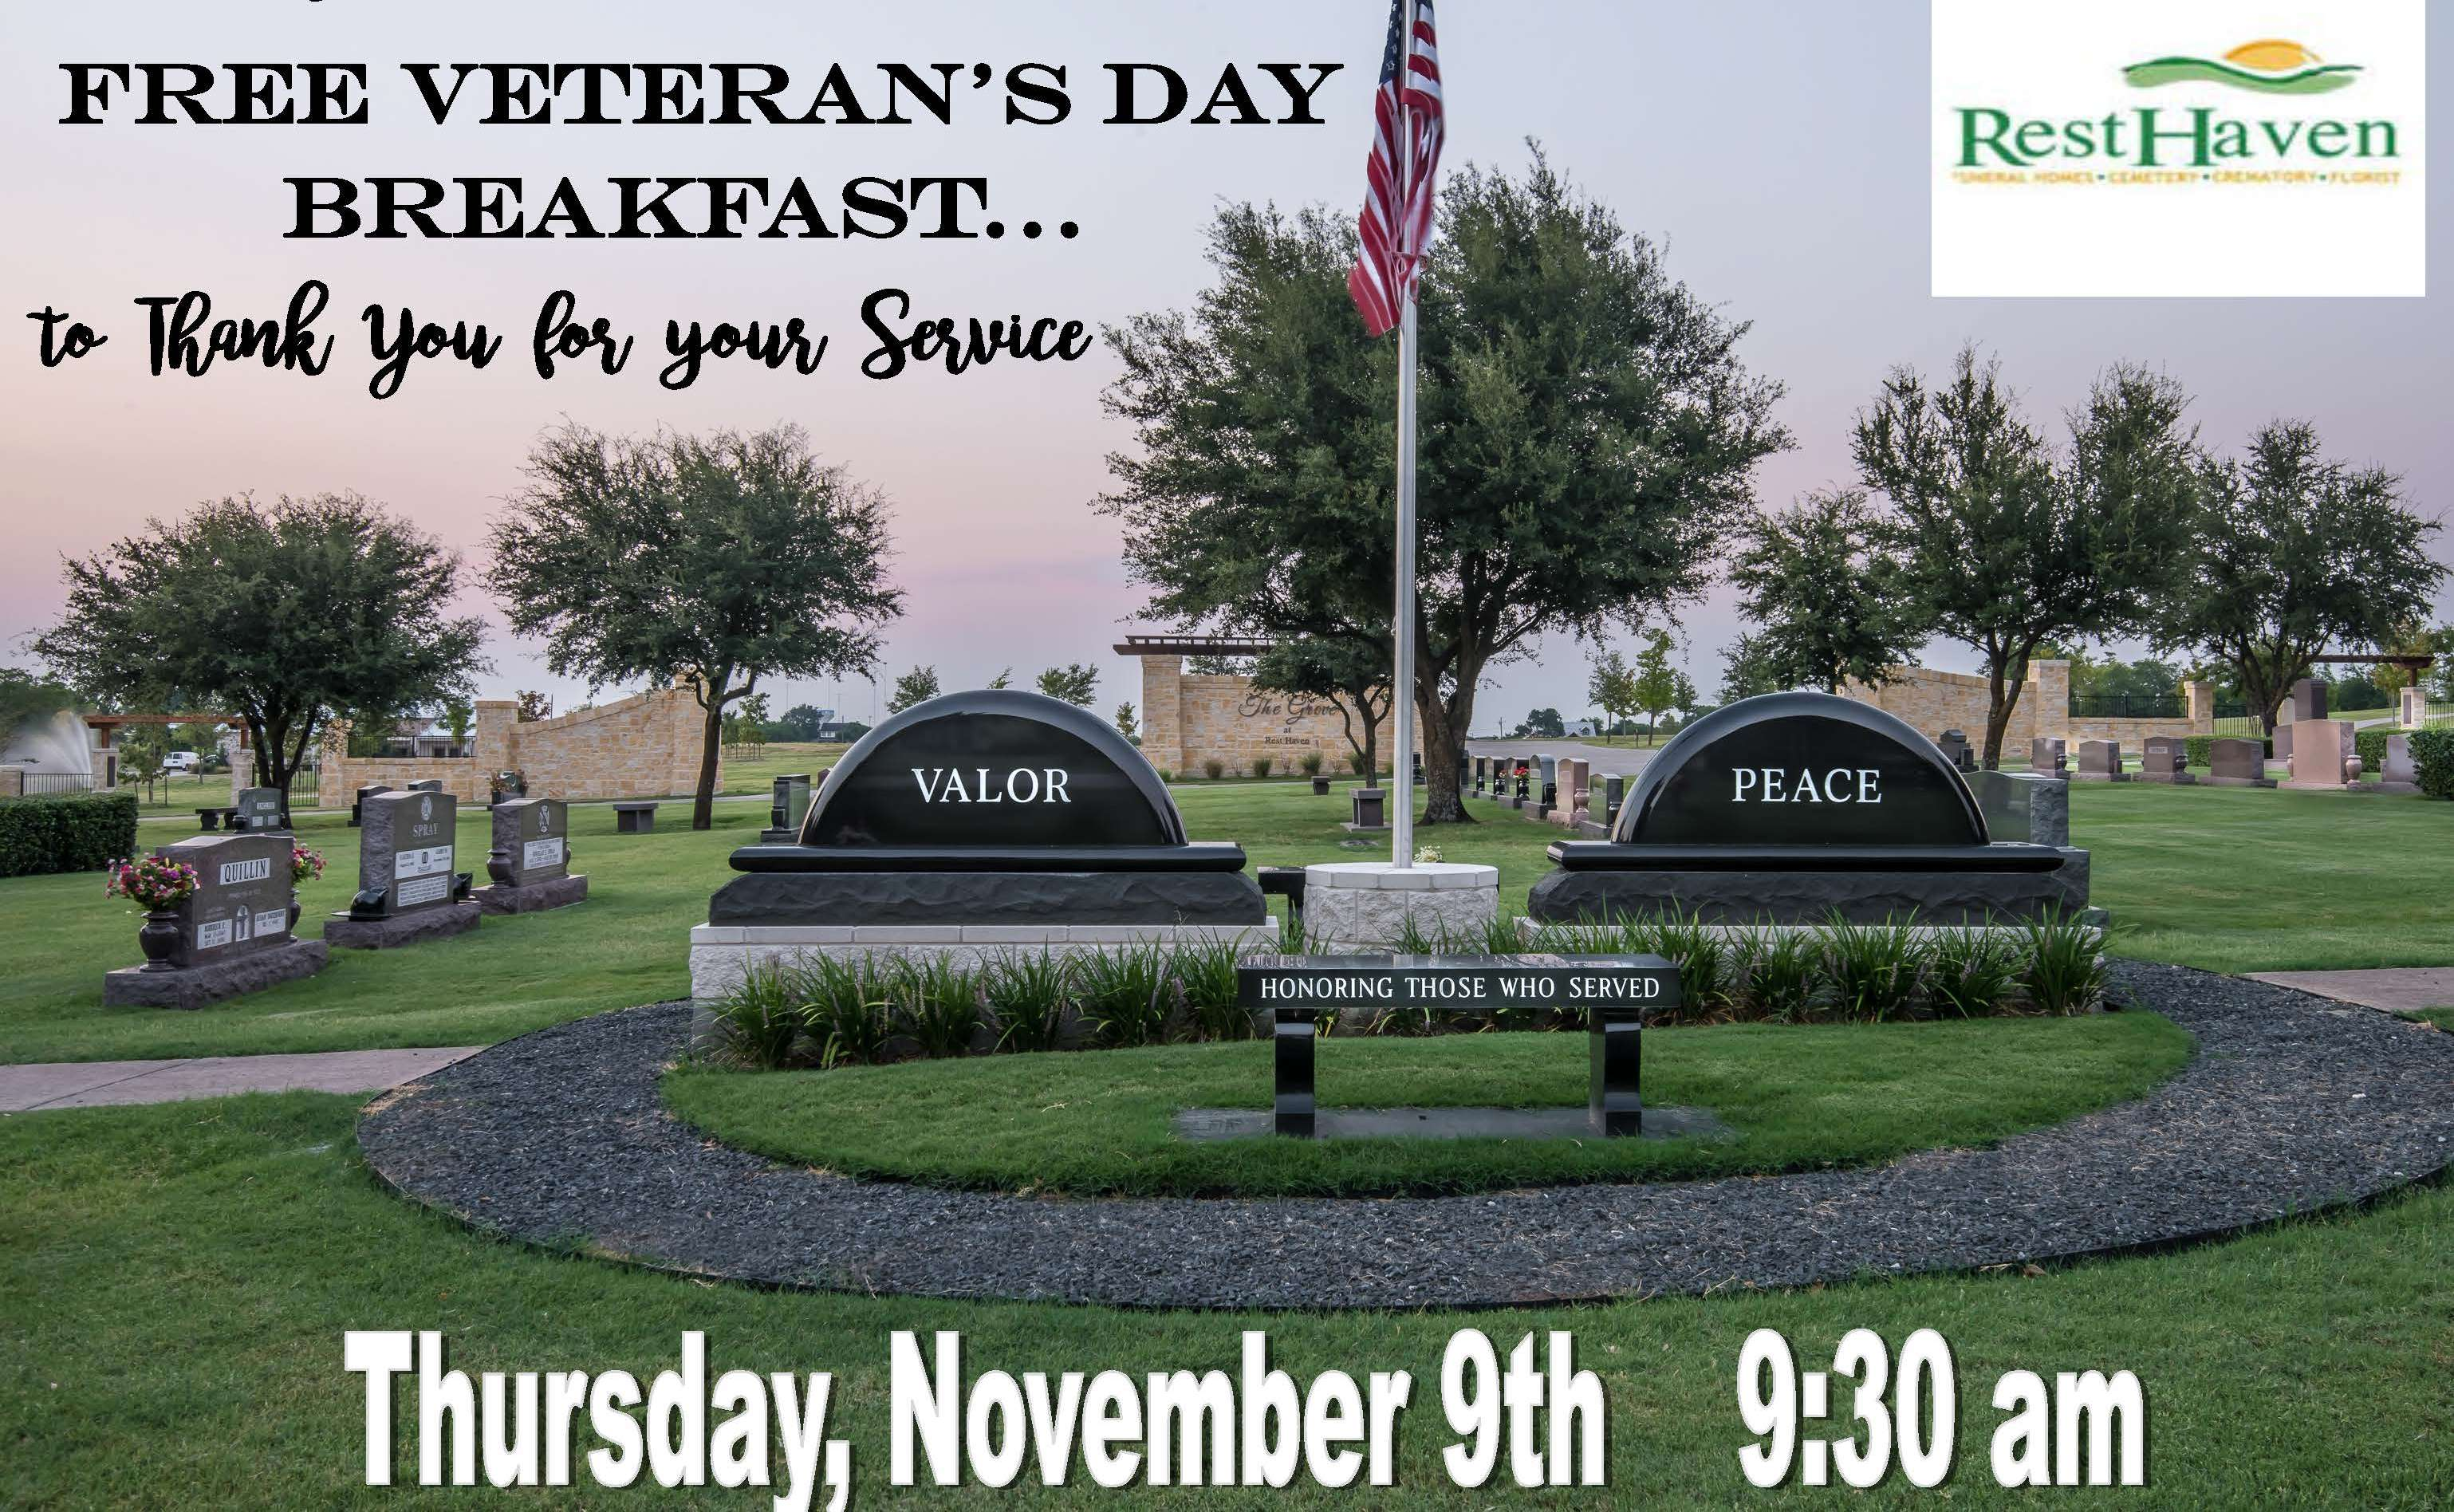 Breakfast and Benefits to Honor the Brave